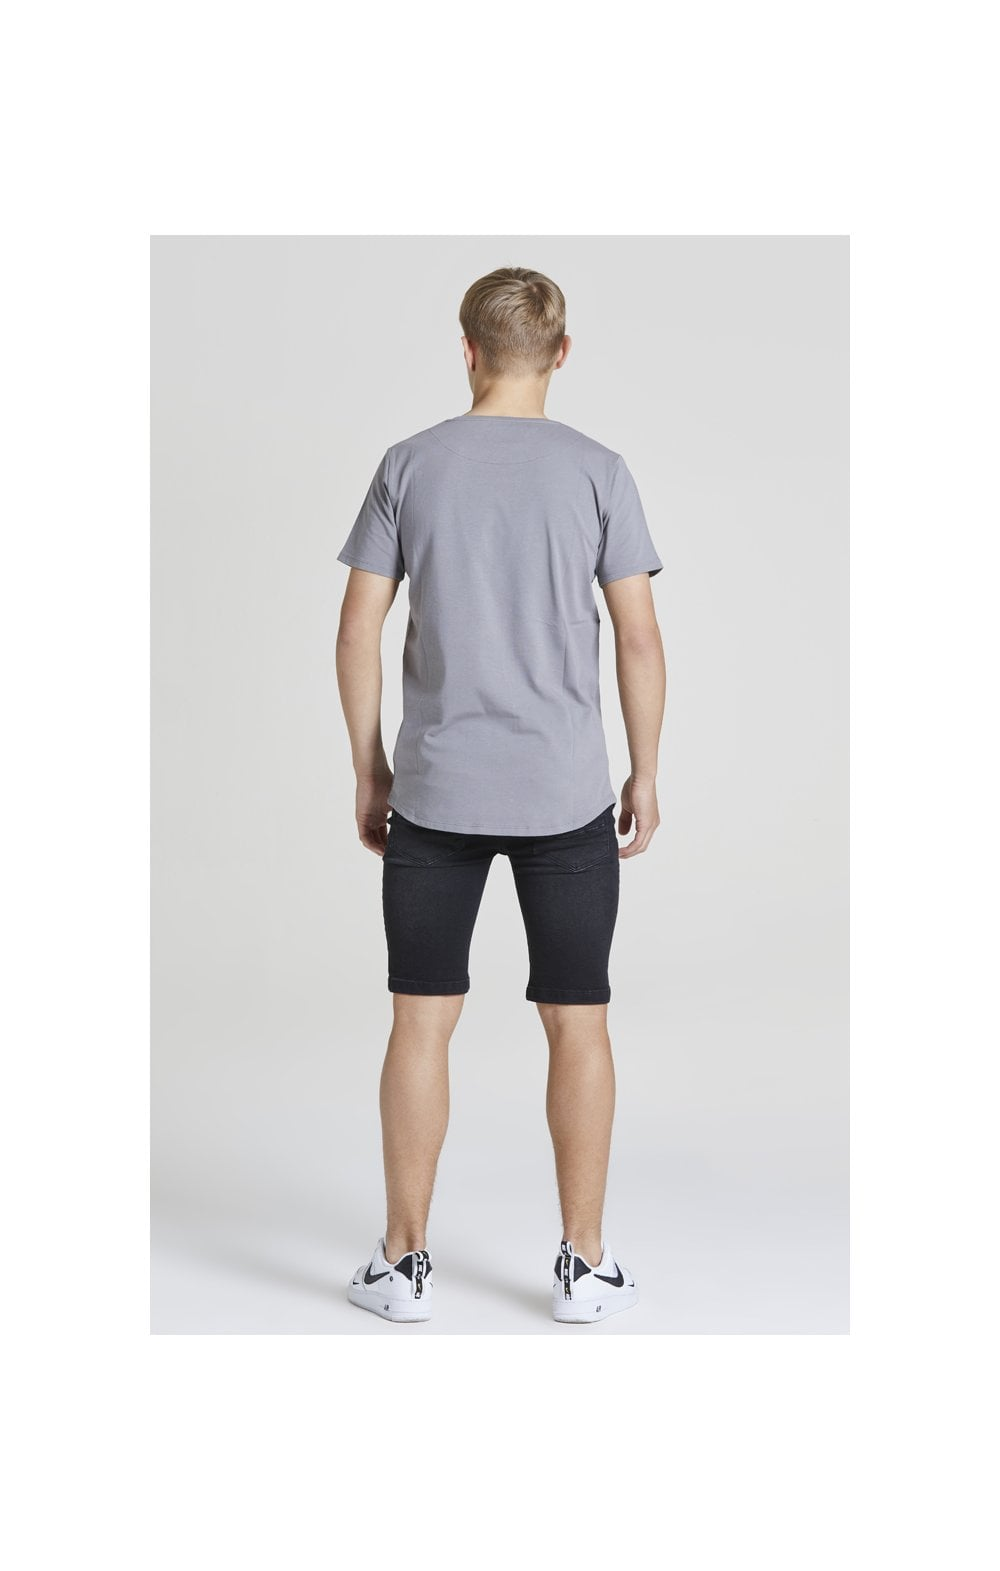 Illusive London S/S Core Tee - Grey (4)